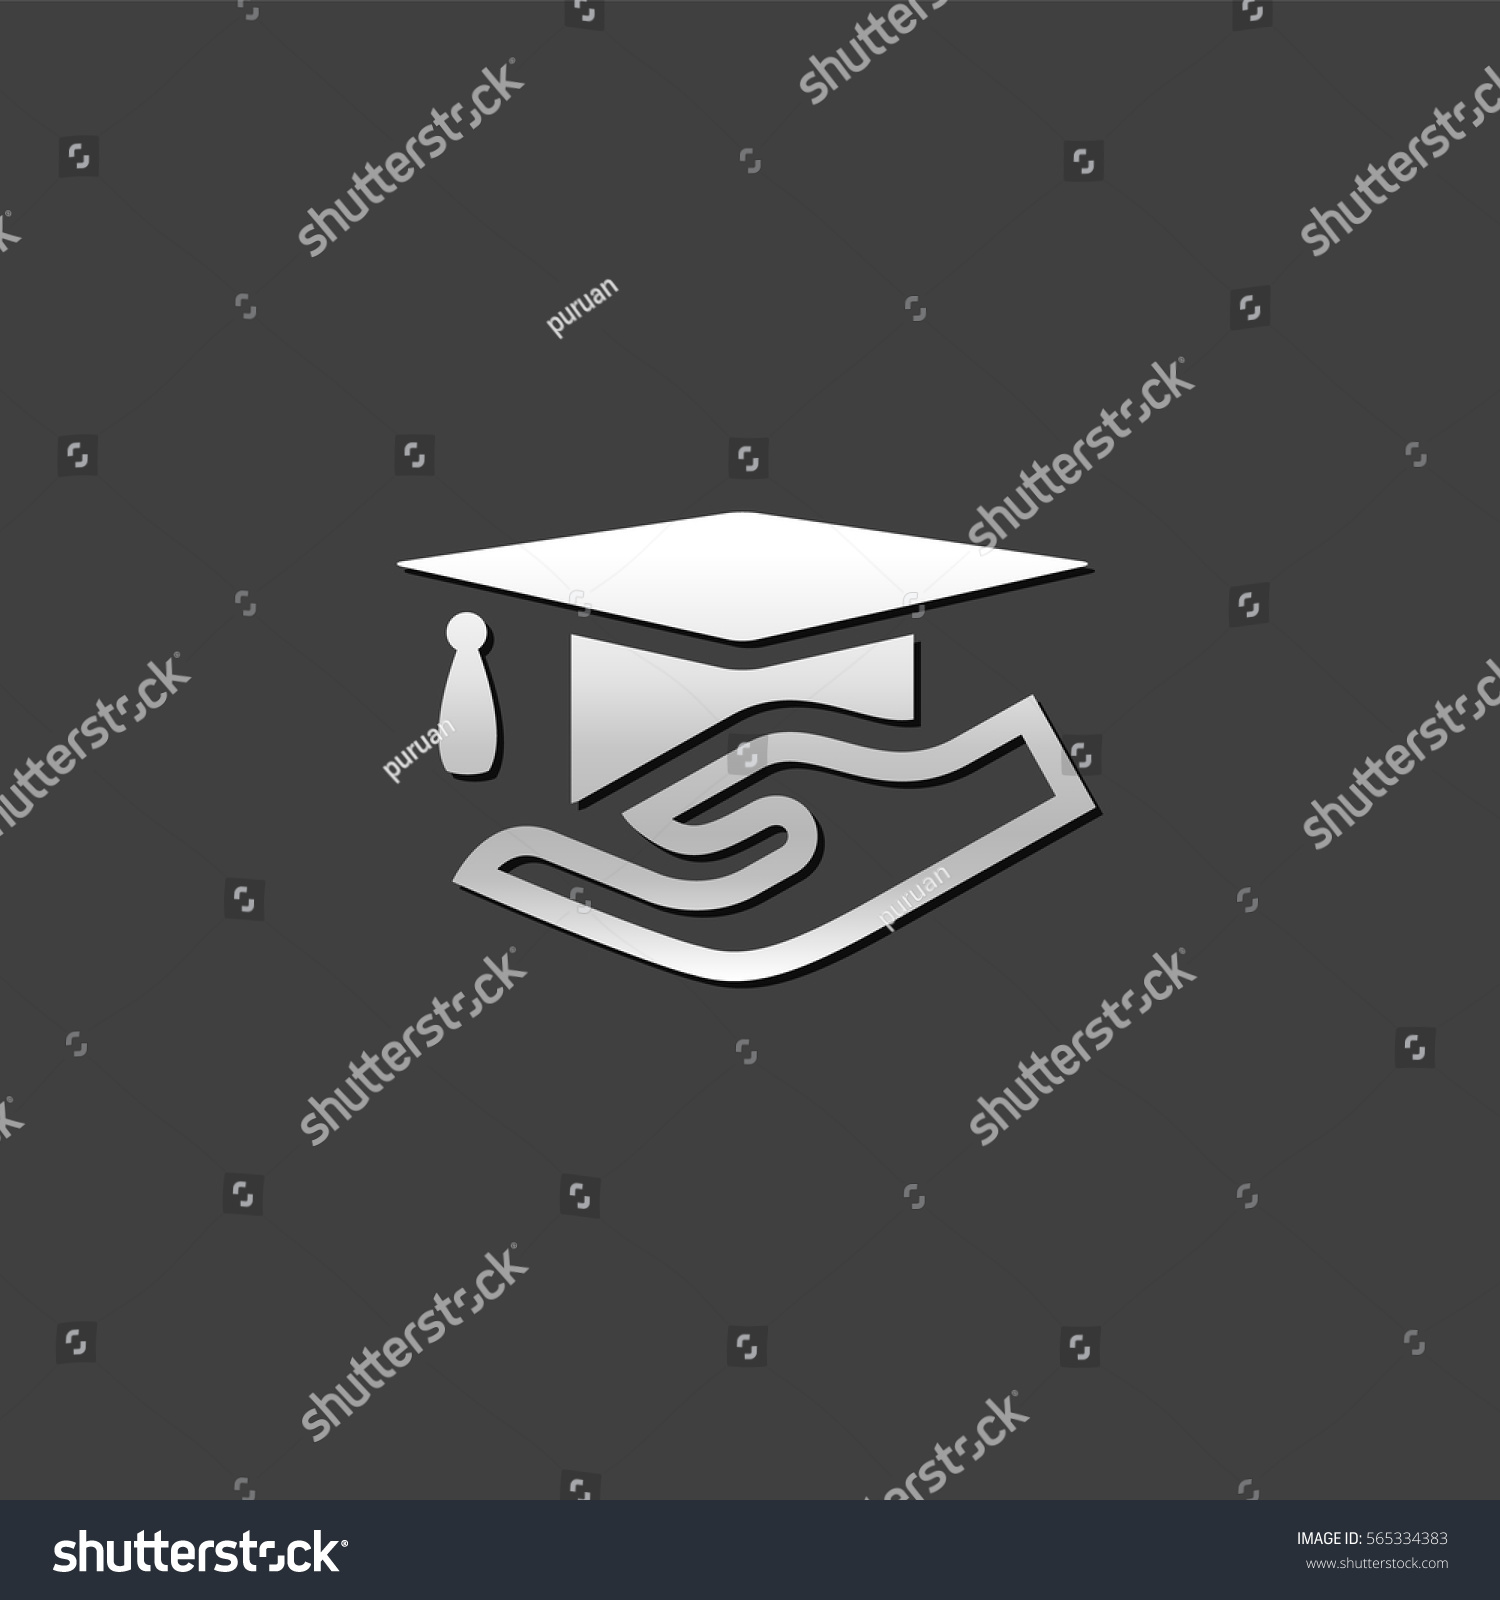 hand holding diploma icon metallic grey stock vector  hand holding diploma icon in metallic grey color style education school insurance